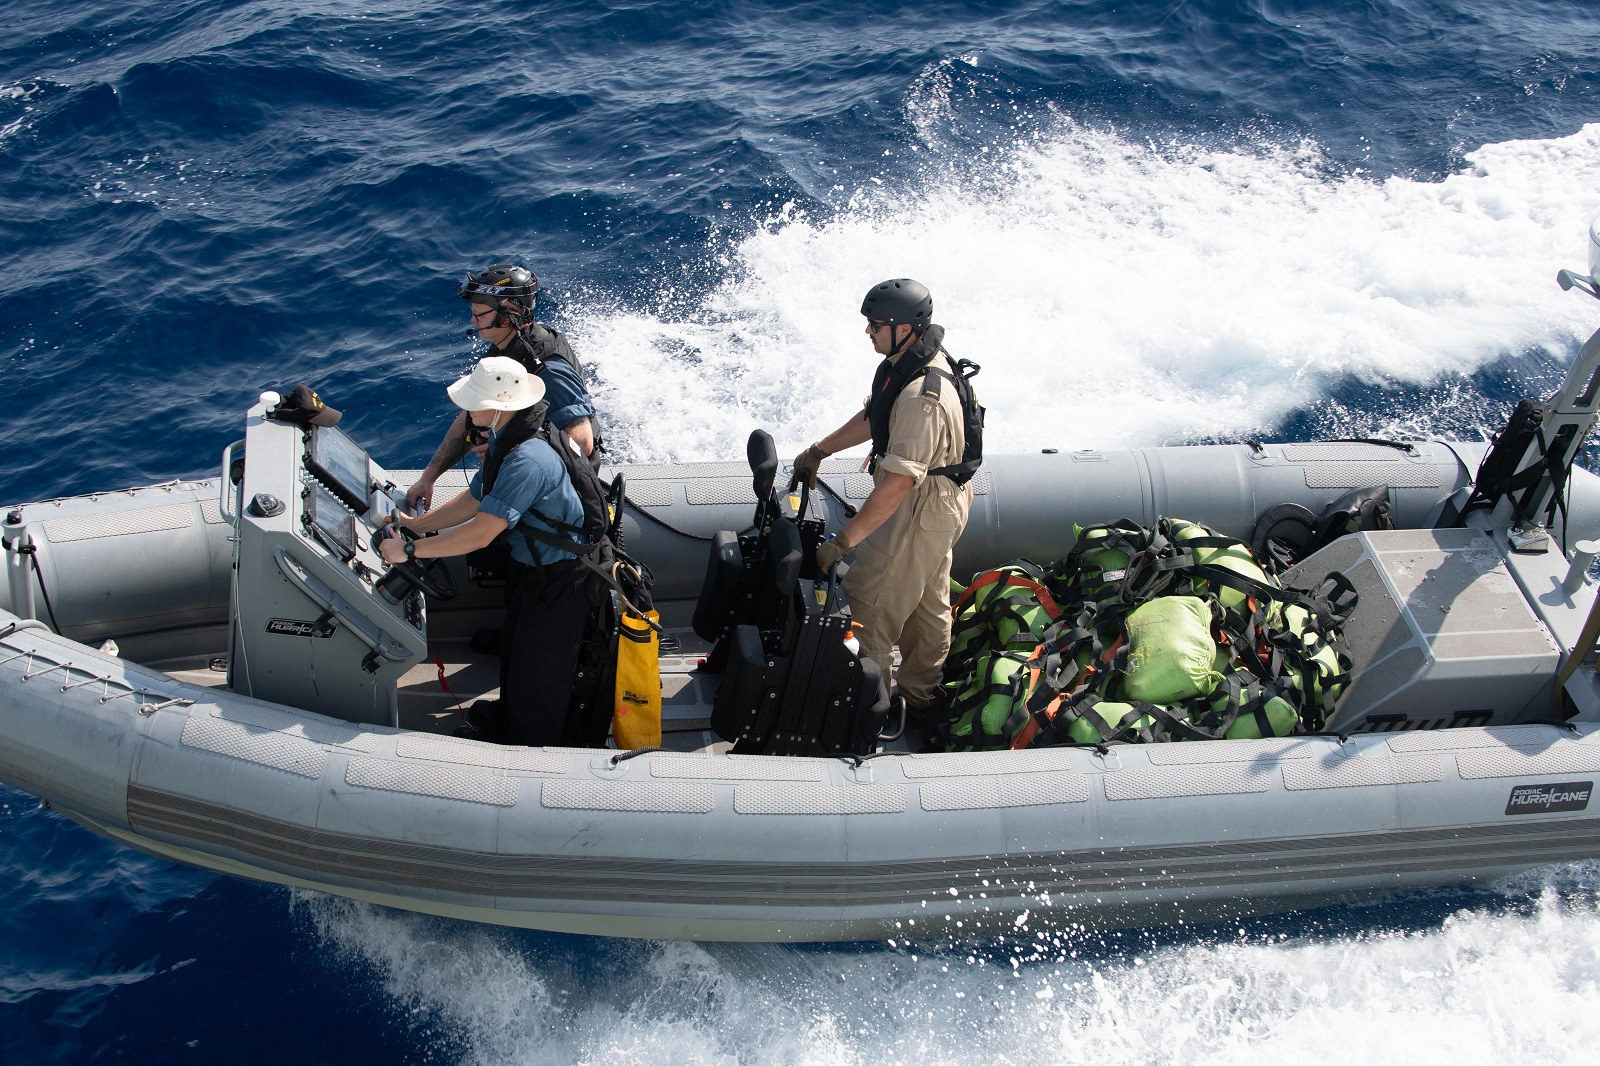 Members of HMCS Regina bring back the first load of seized hashish from a drug smuggling vessel during Operation ARTEMIS on April 6, 2019.